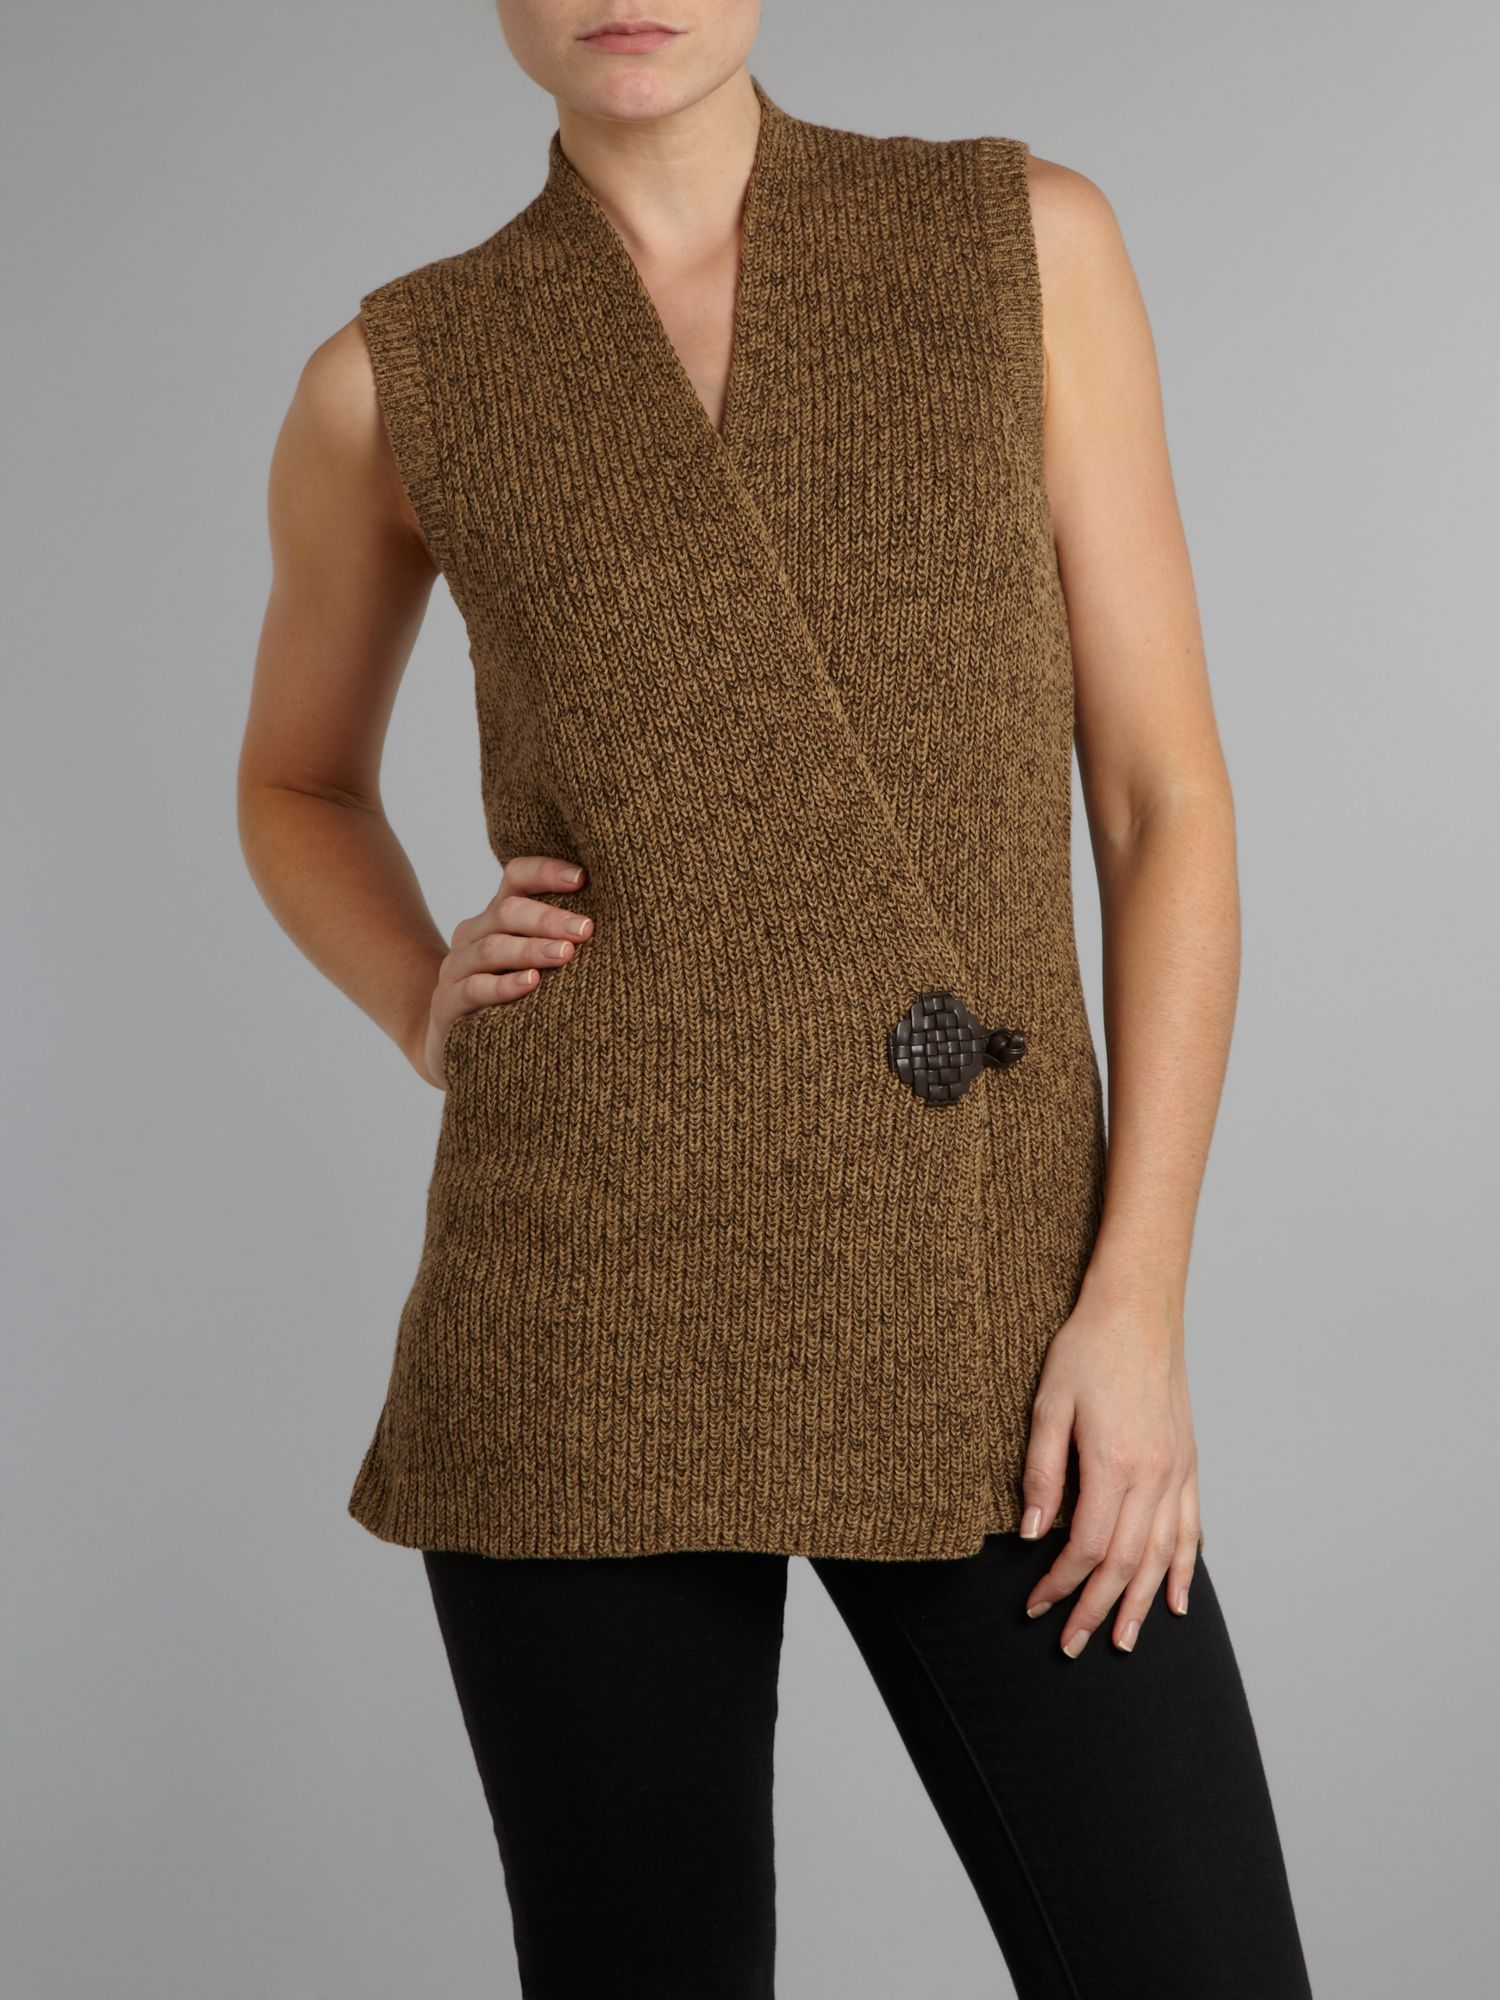 Antonin knitted vest with leather toggle